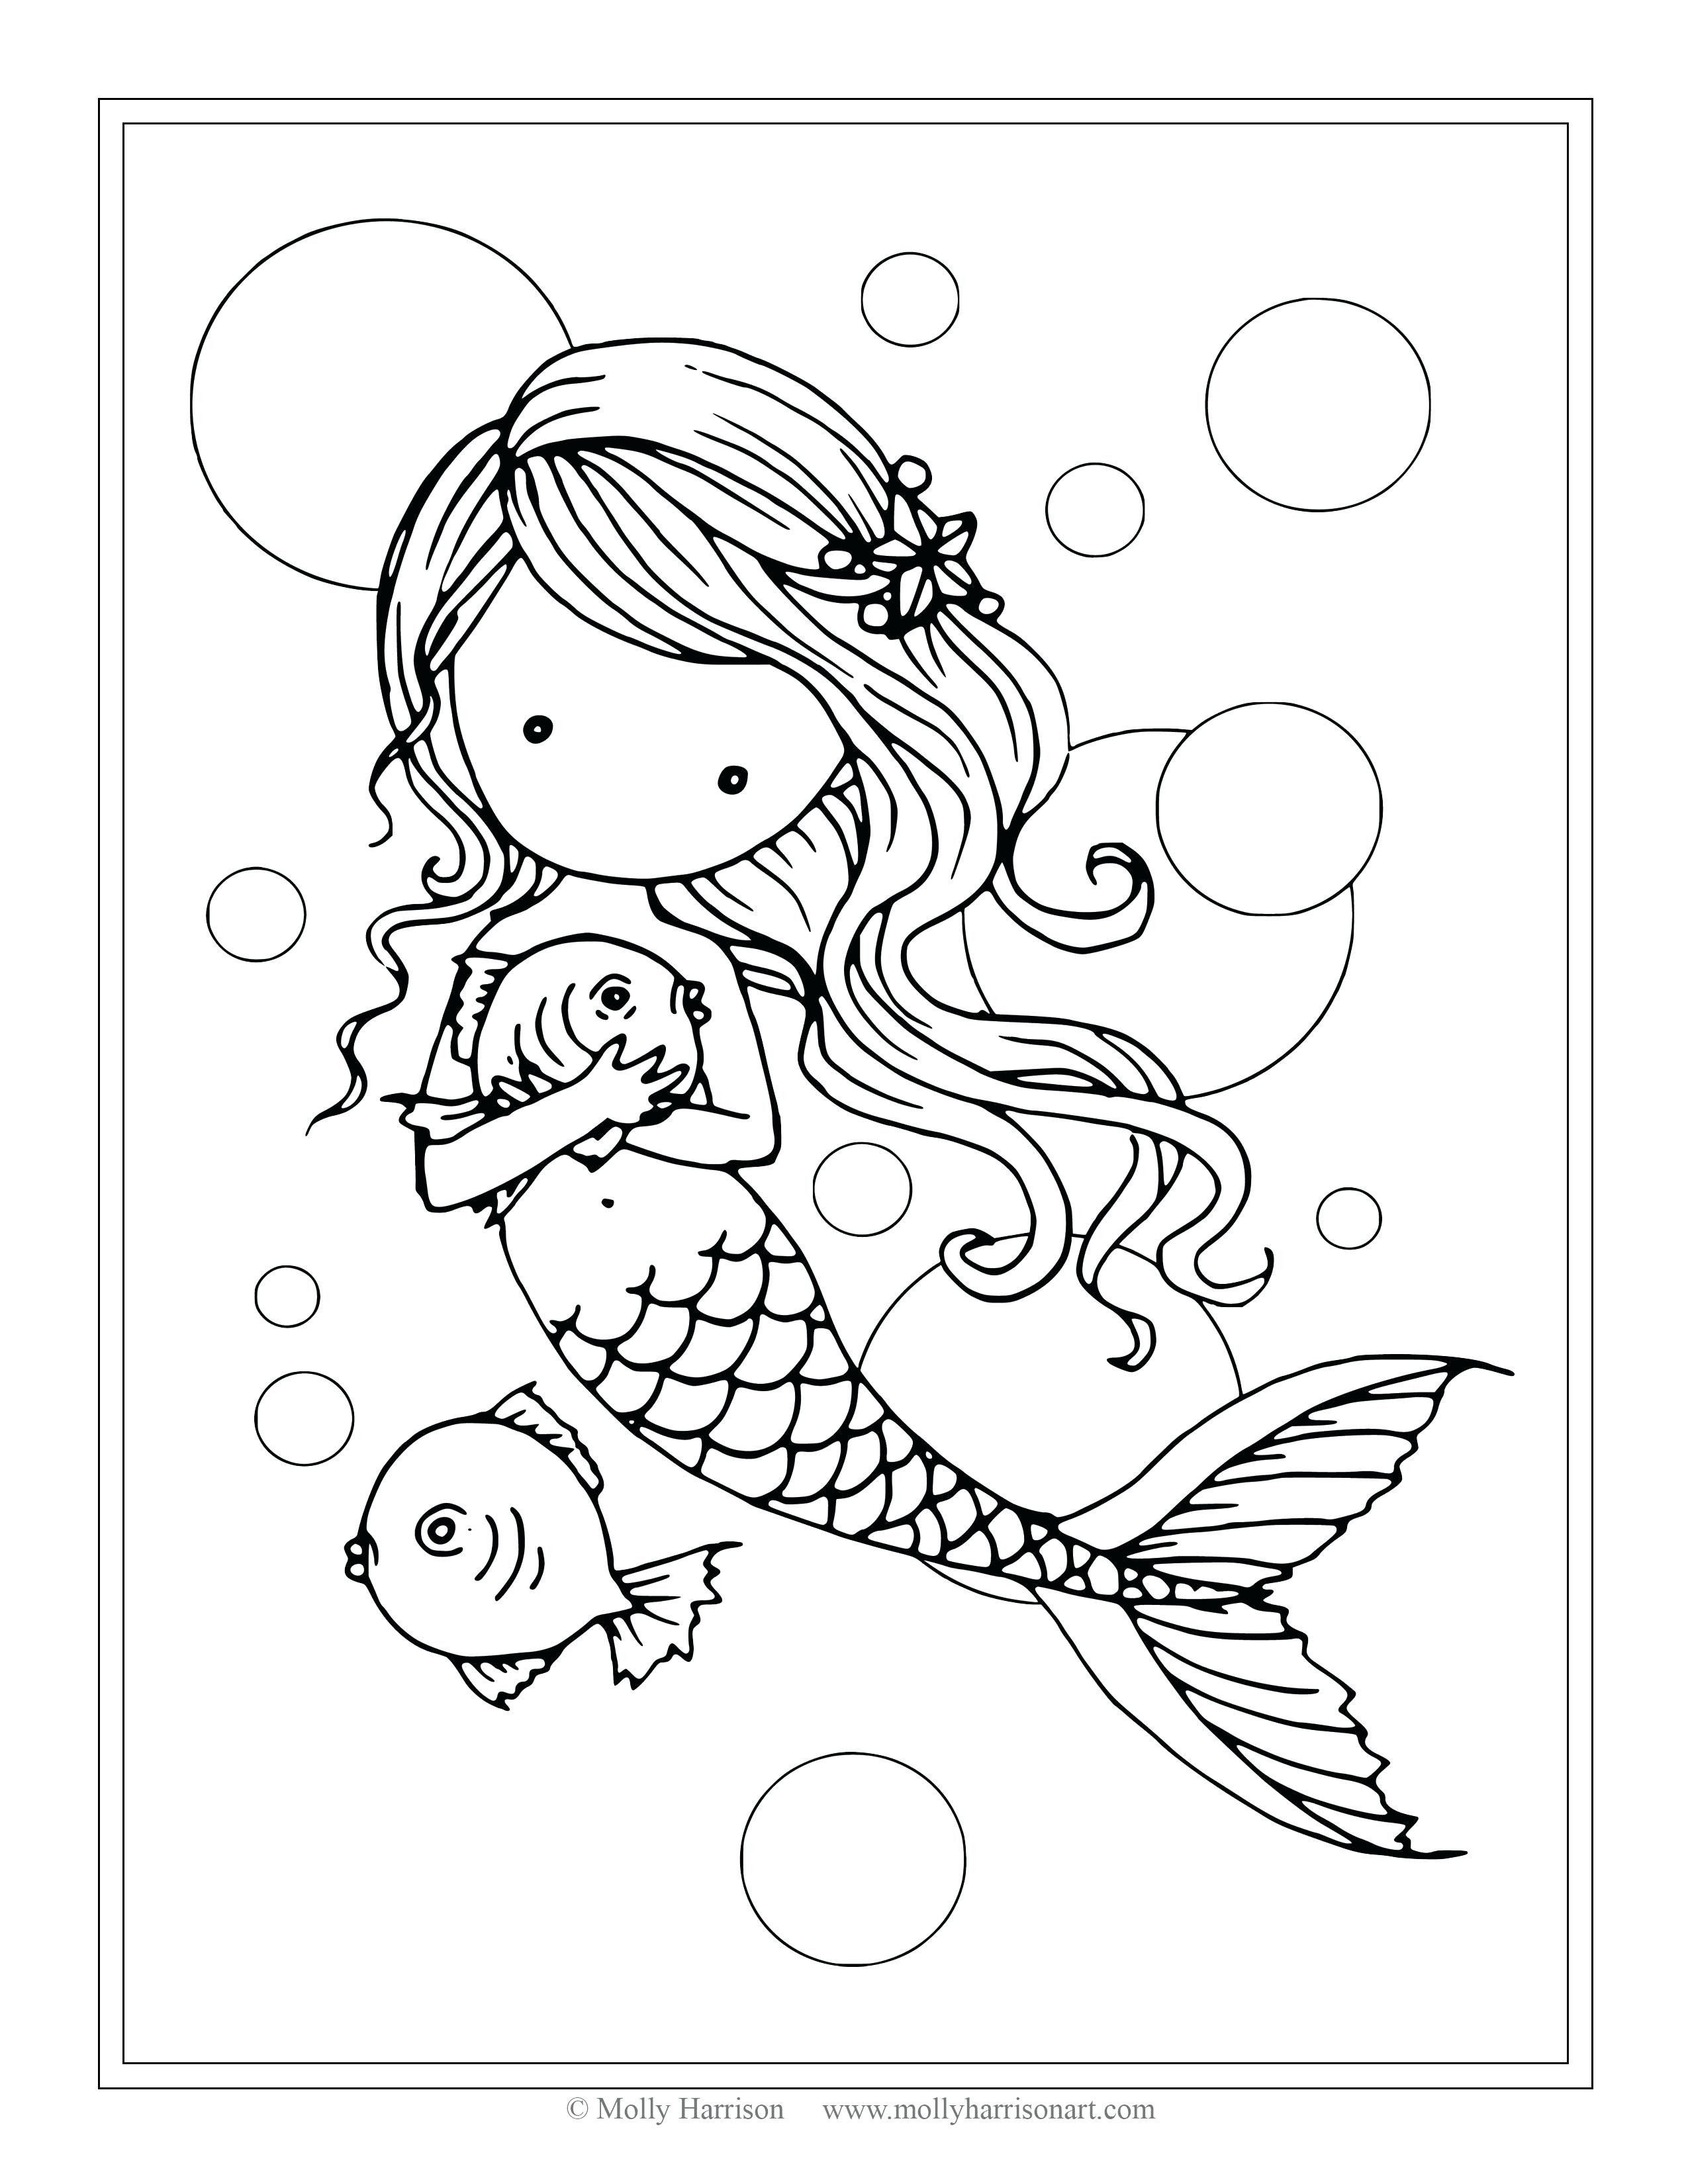 Mermaid Coloring Pages For Adults Luxury Ariel The Mermaid Coloring Pages To Print Codeadventur Mermaid Coloring Book Mermaid Coloring Mermaid Coloring Pages